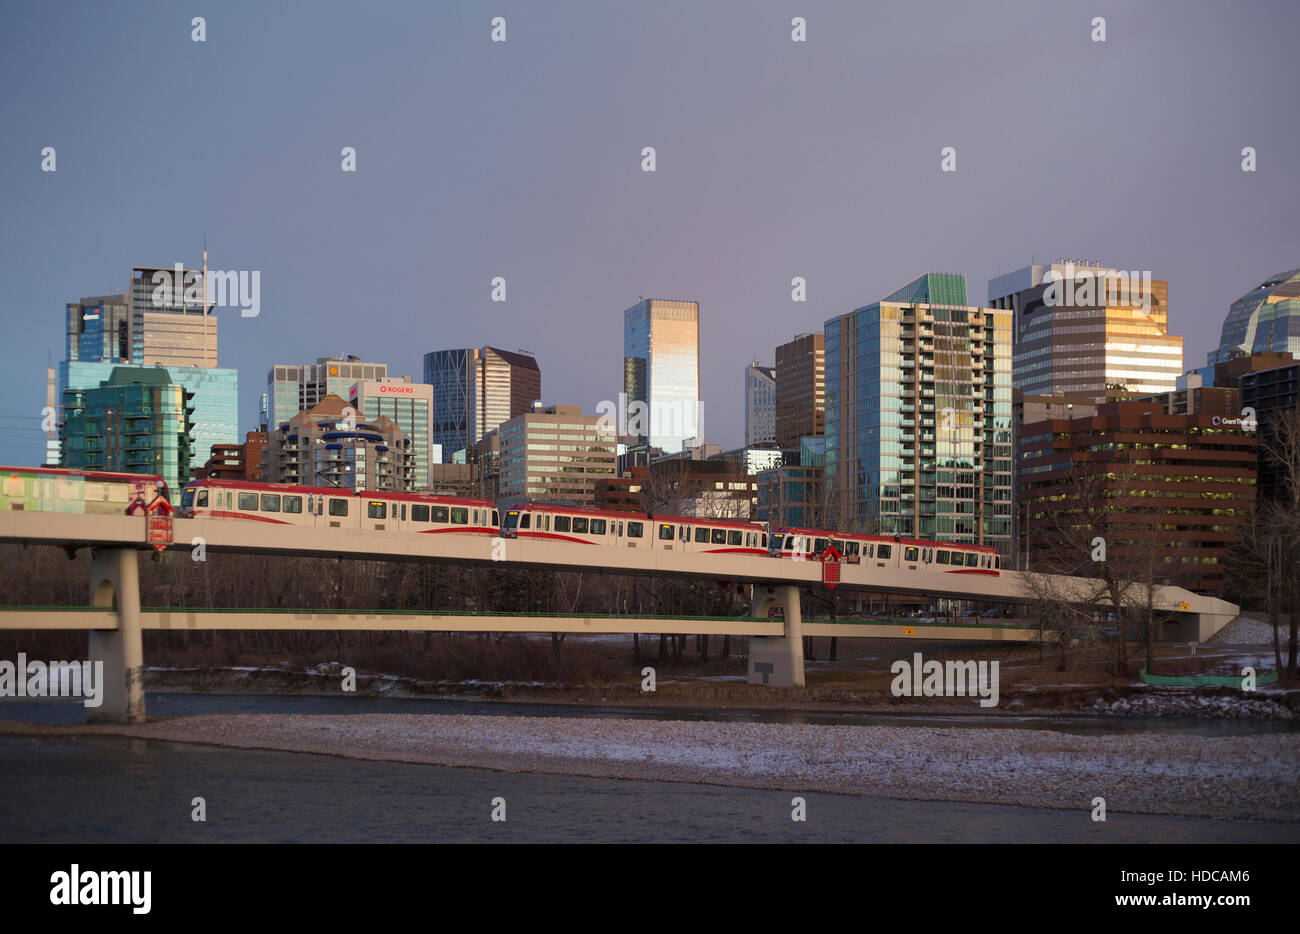 Light rail electric train powered by wind energy crossing Bow River to downtown Calgary, pedestrian bridge underneath - Stock Image